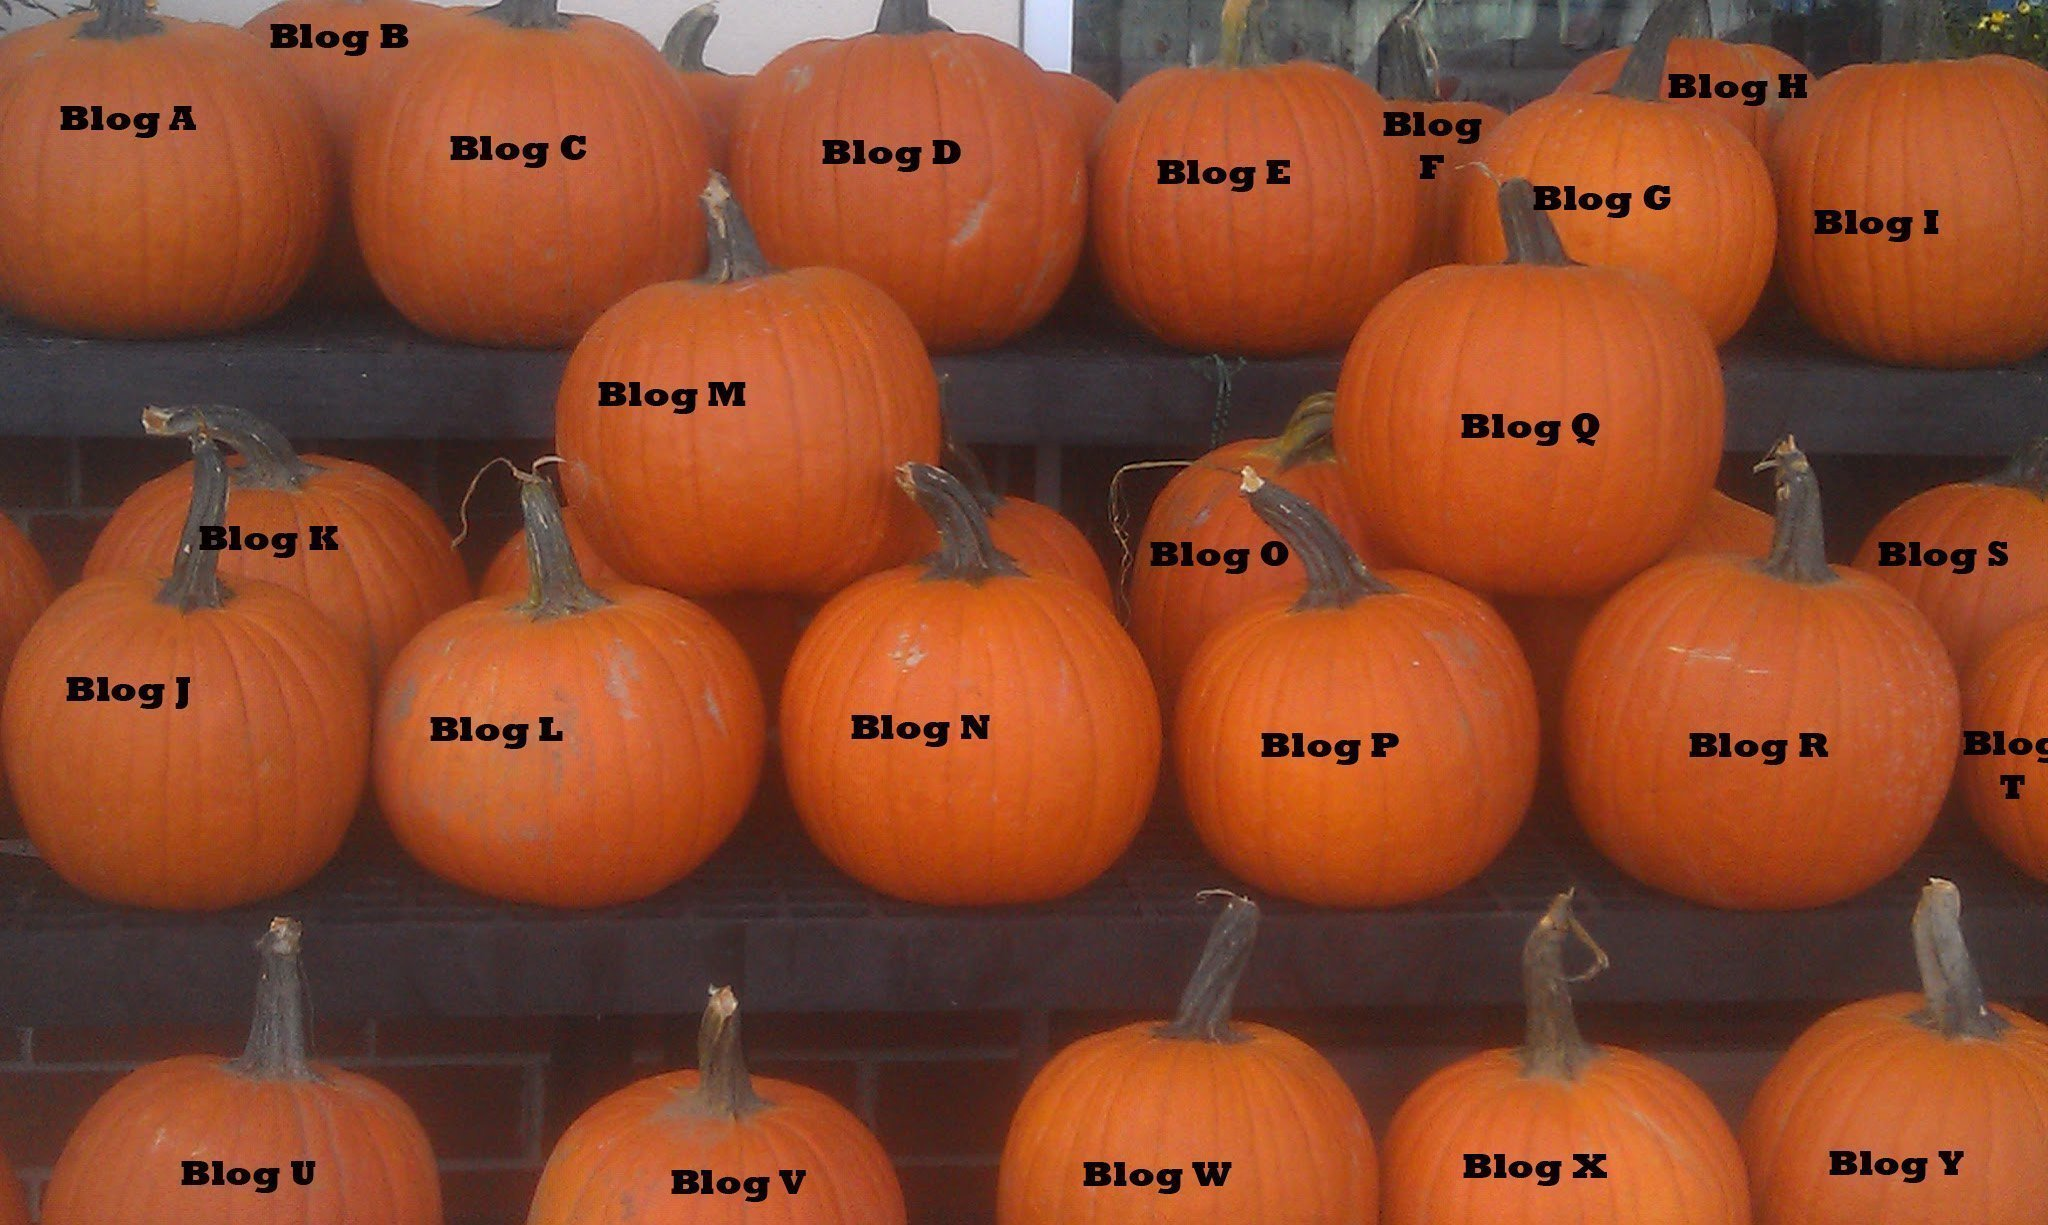 what makes one pumpkin different from another